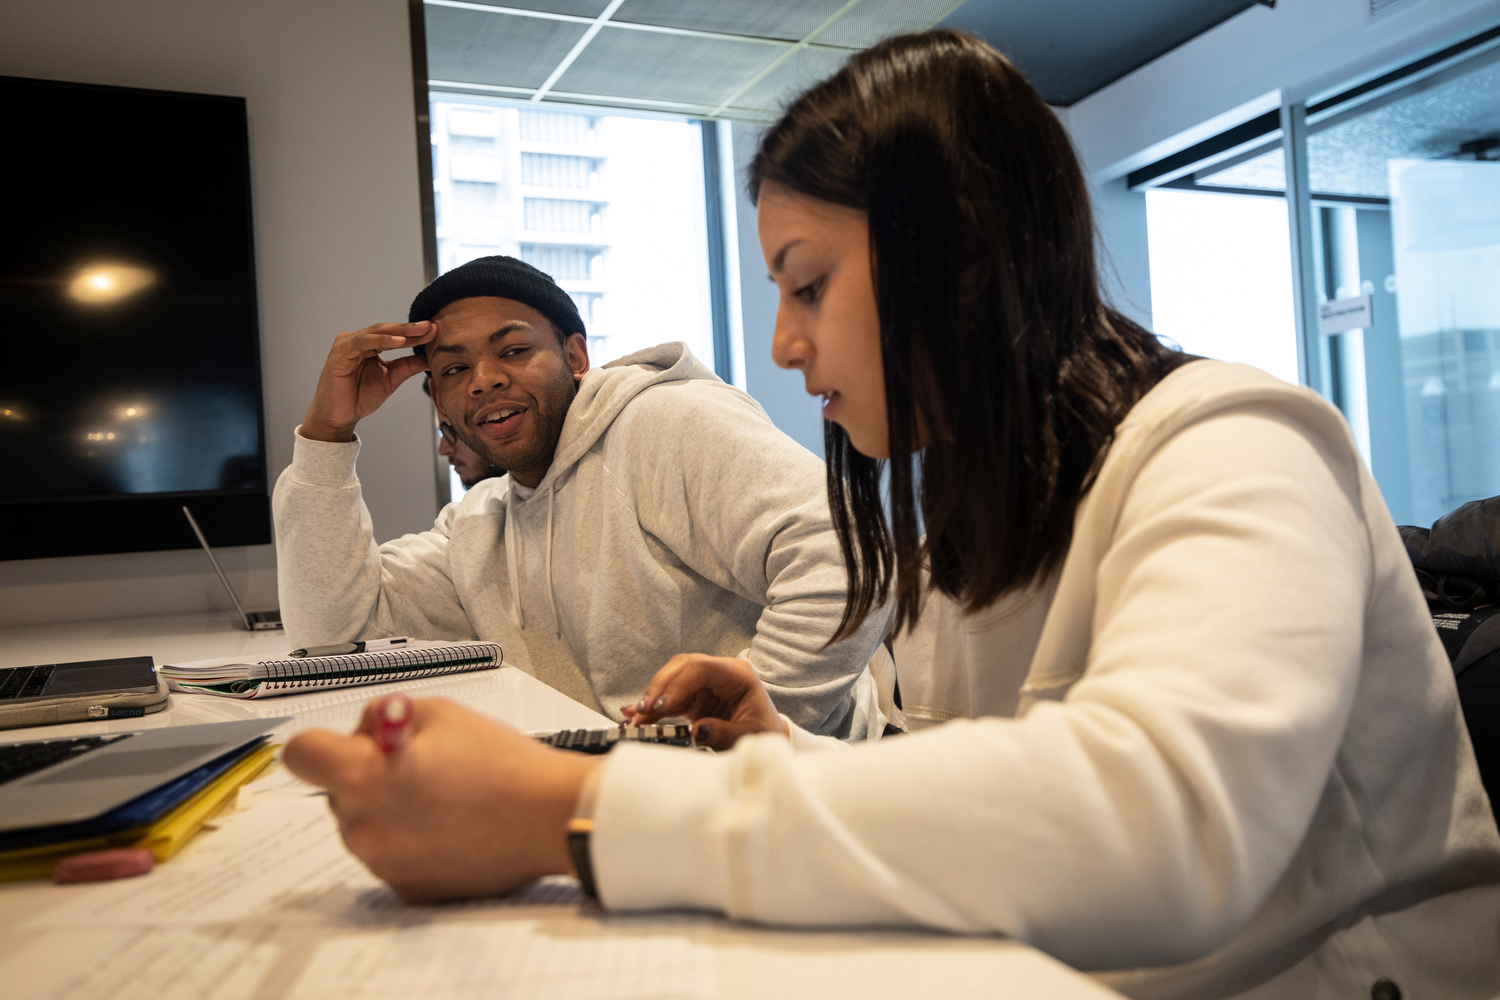 Ricky Foster (LAS '20), left, and Rolla Kattoum (LAS '22) waste no time getting to work on an assignment for their physical chemistry class in the Academic and Residential Complex.